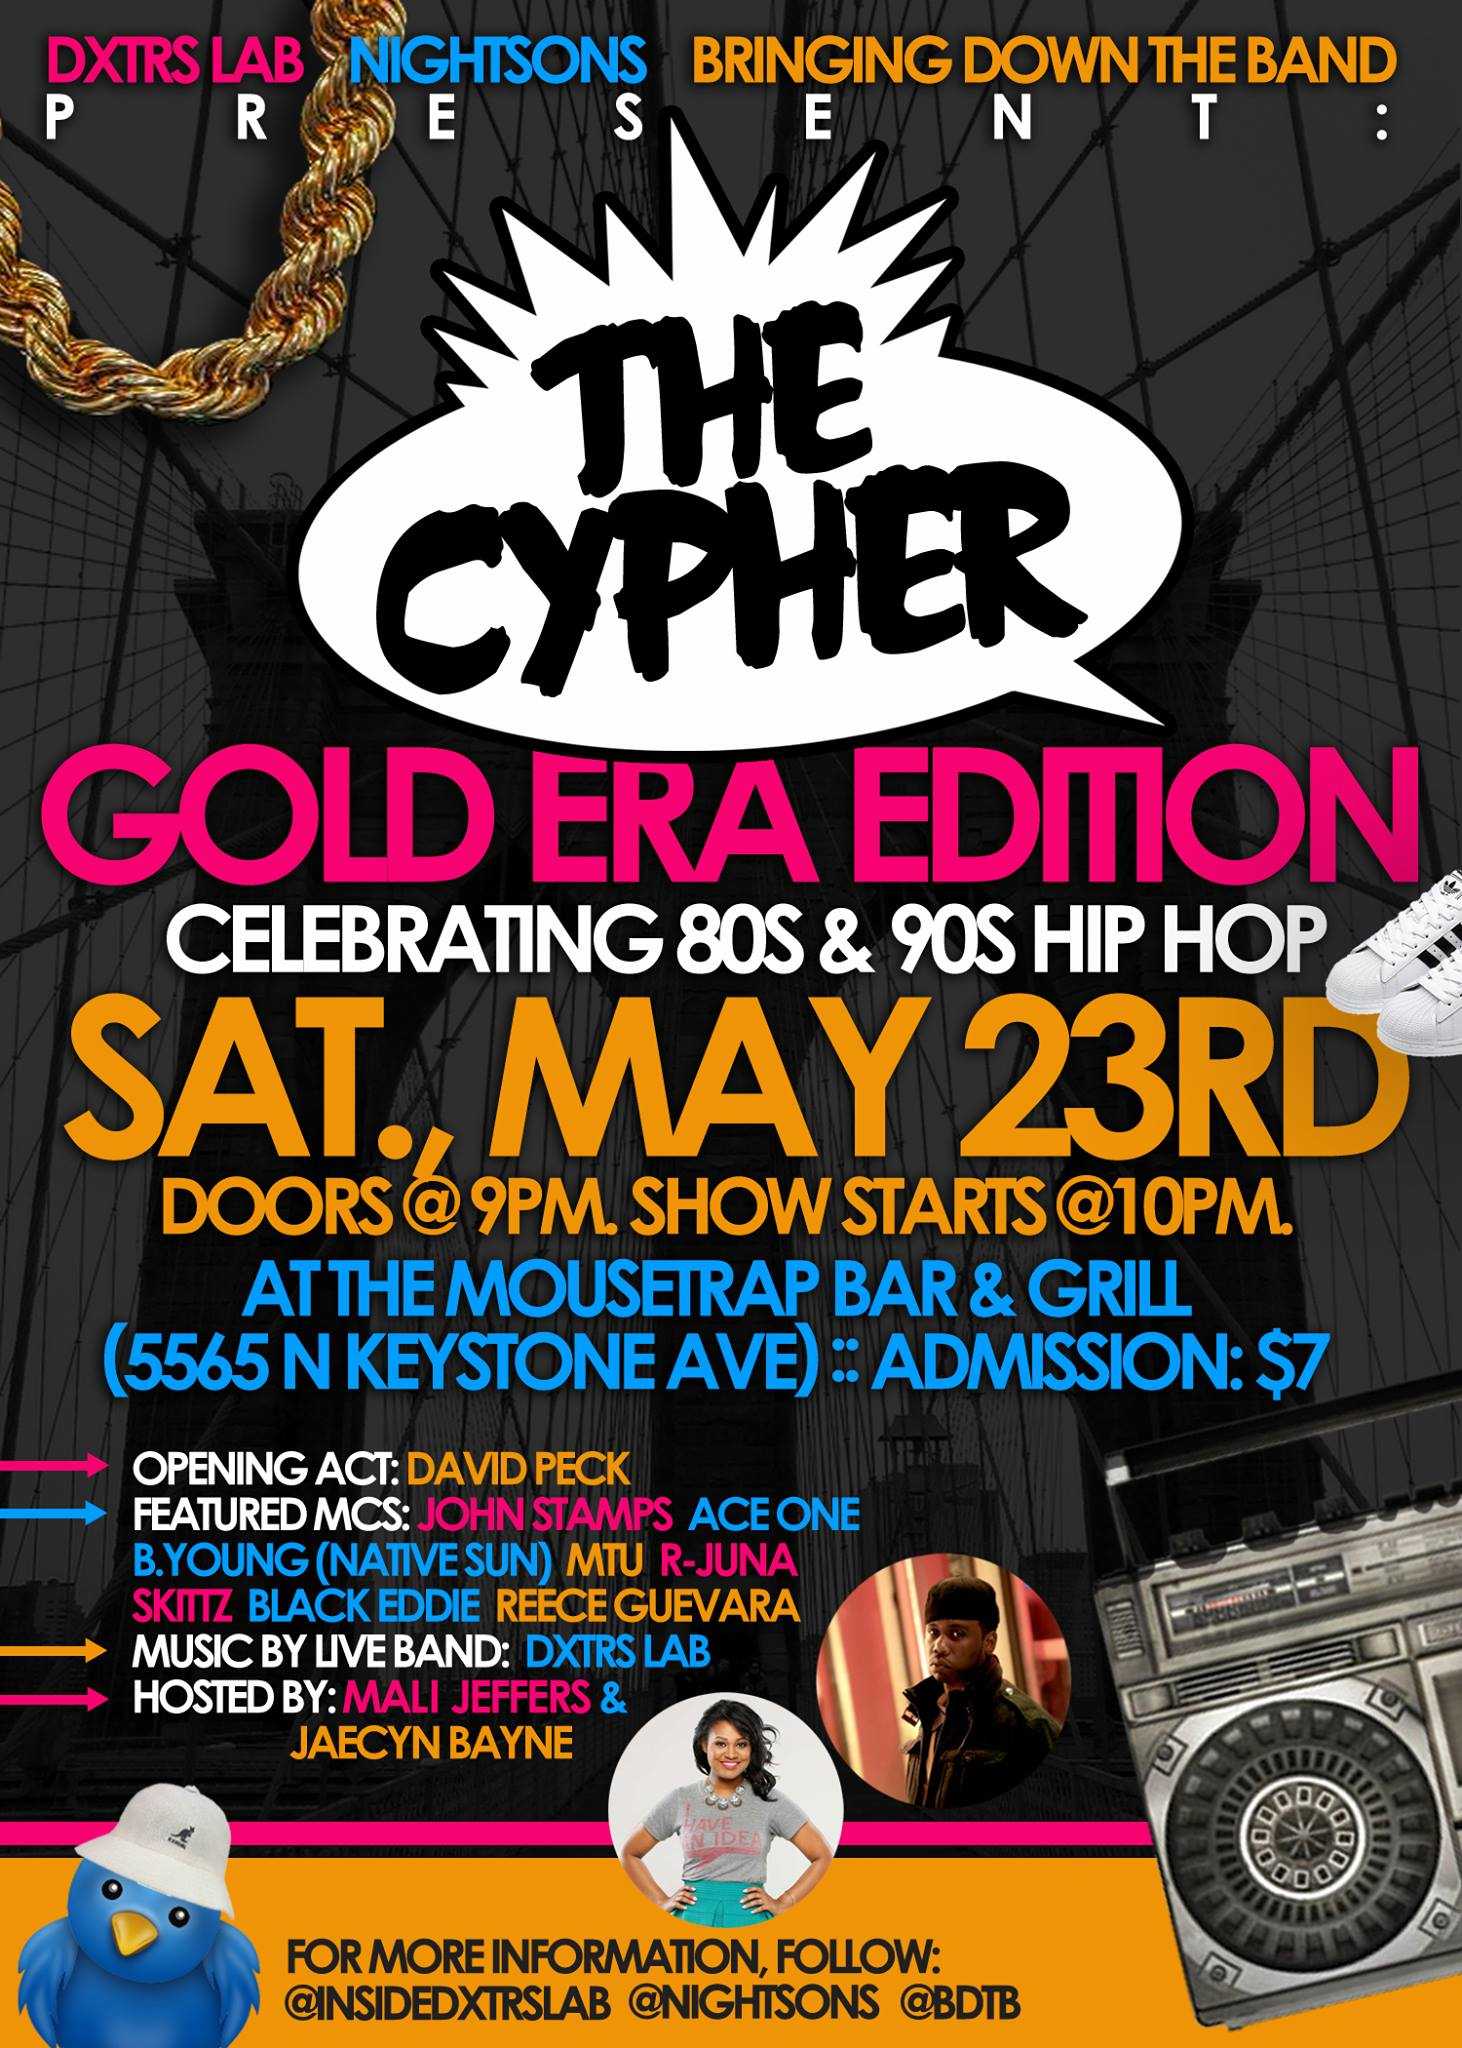 The Cypher: Presented By Dxtrs Lab, Bringing Down The Band & Nightsons - Saturday, May 23rd